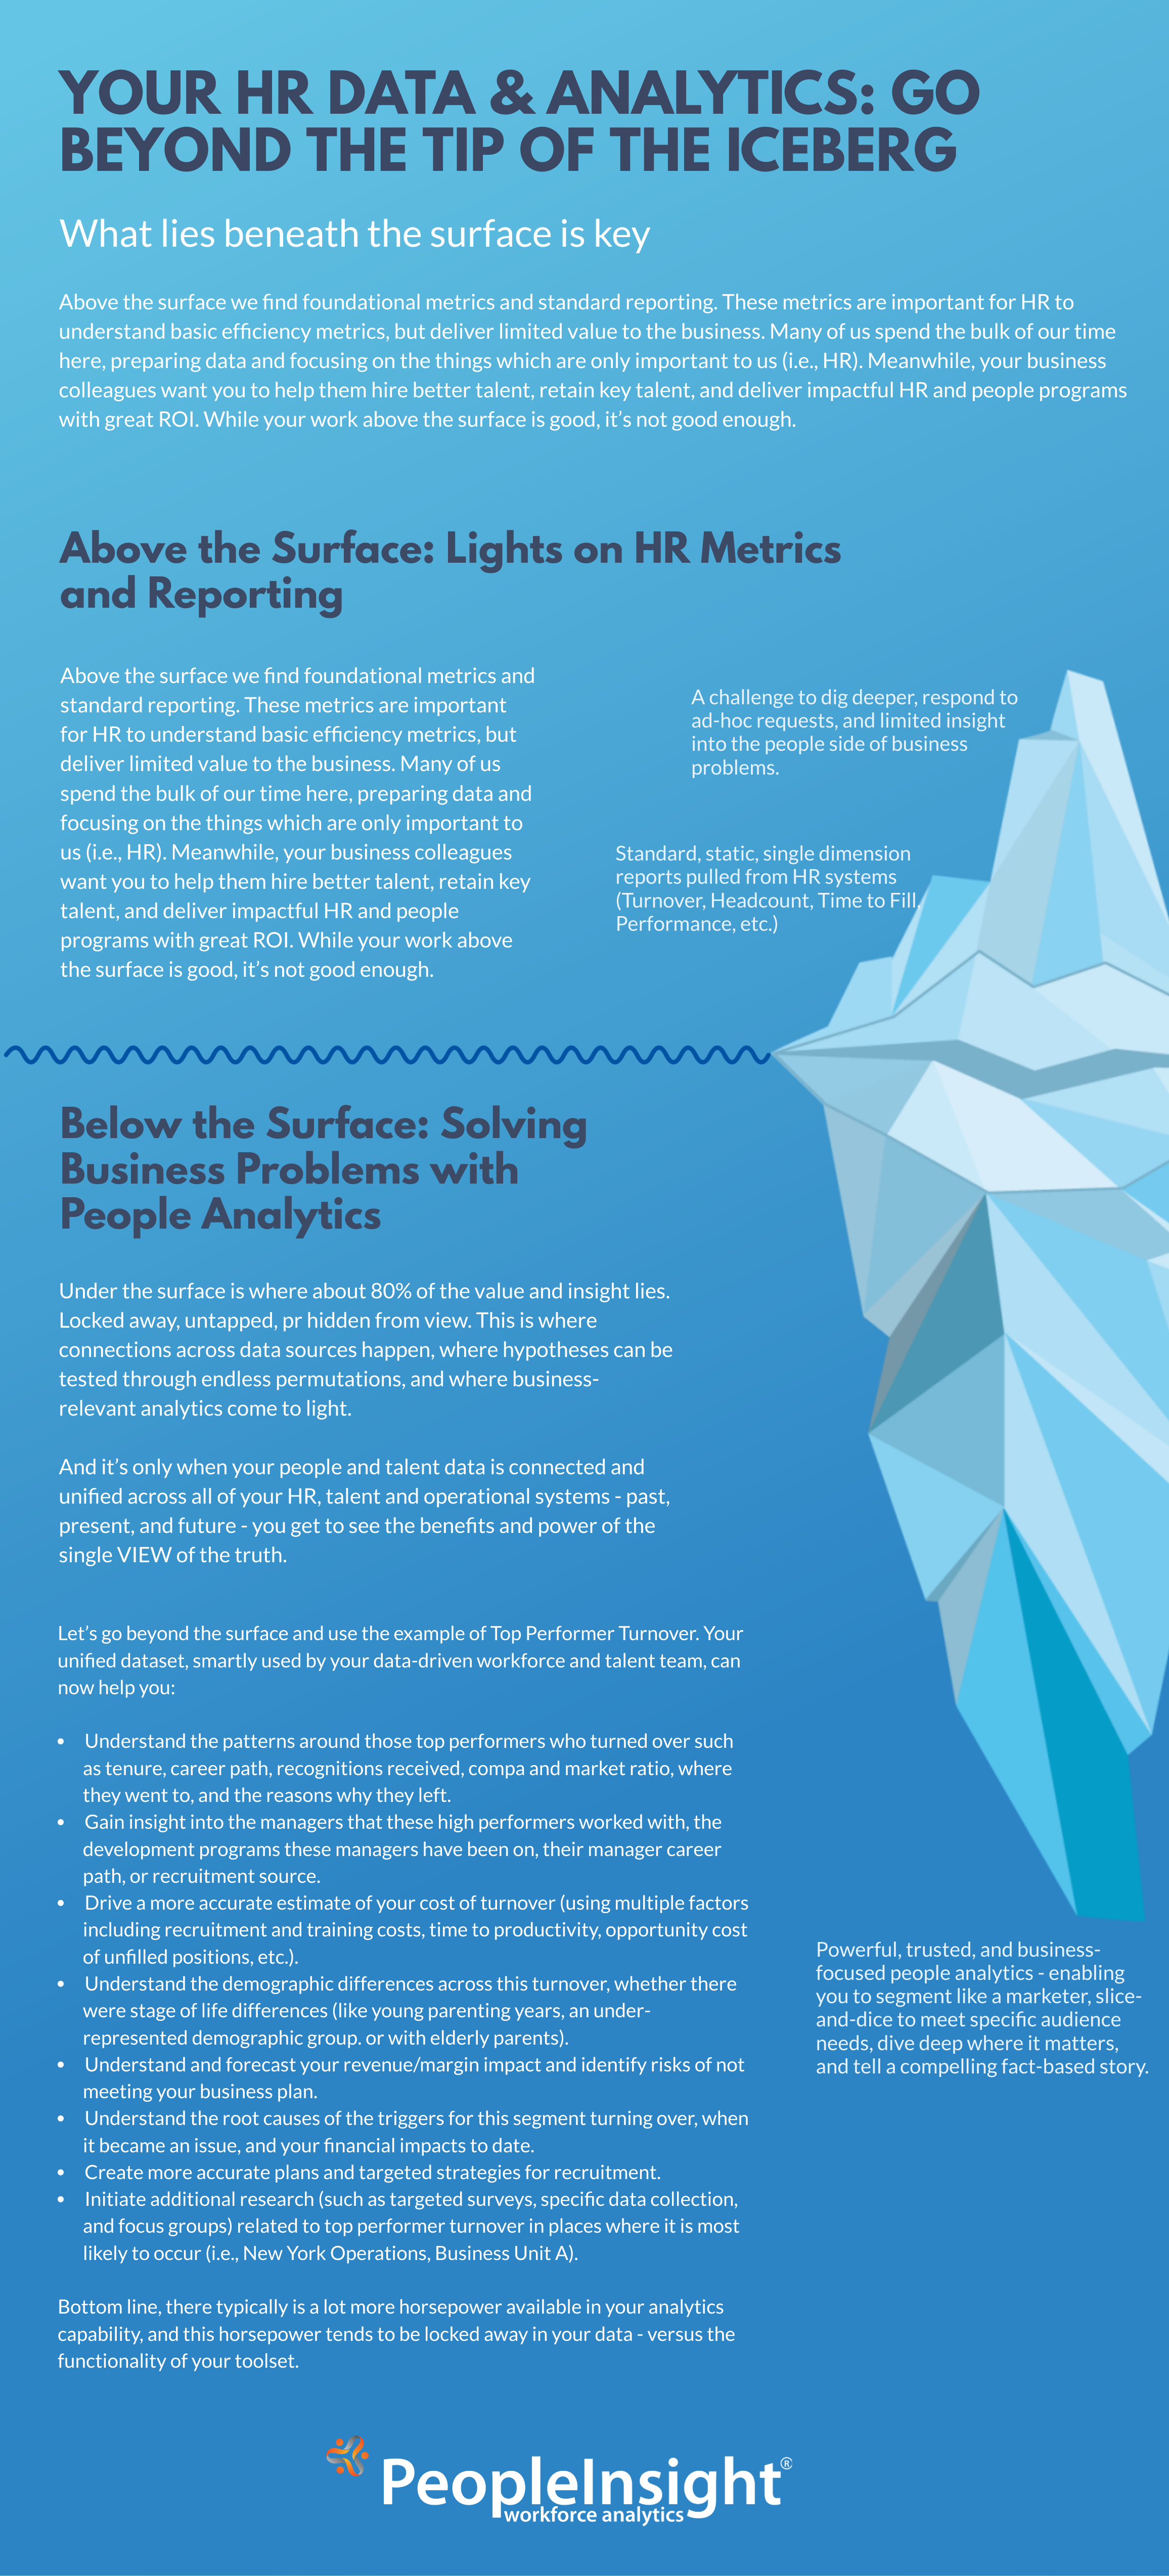 Your-HR-Data-Analytics-Go-Beyond-the-Tip-of-the-Iceberg